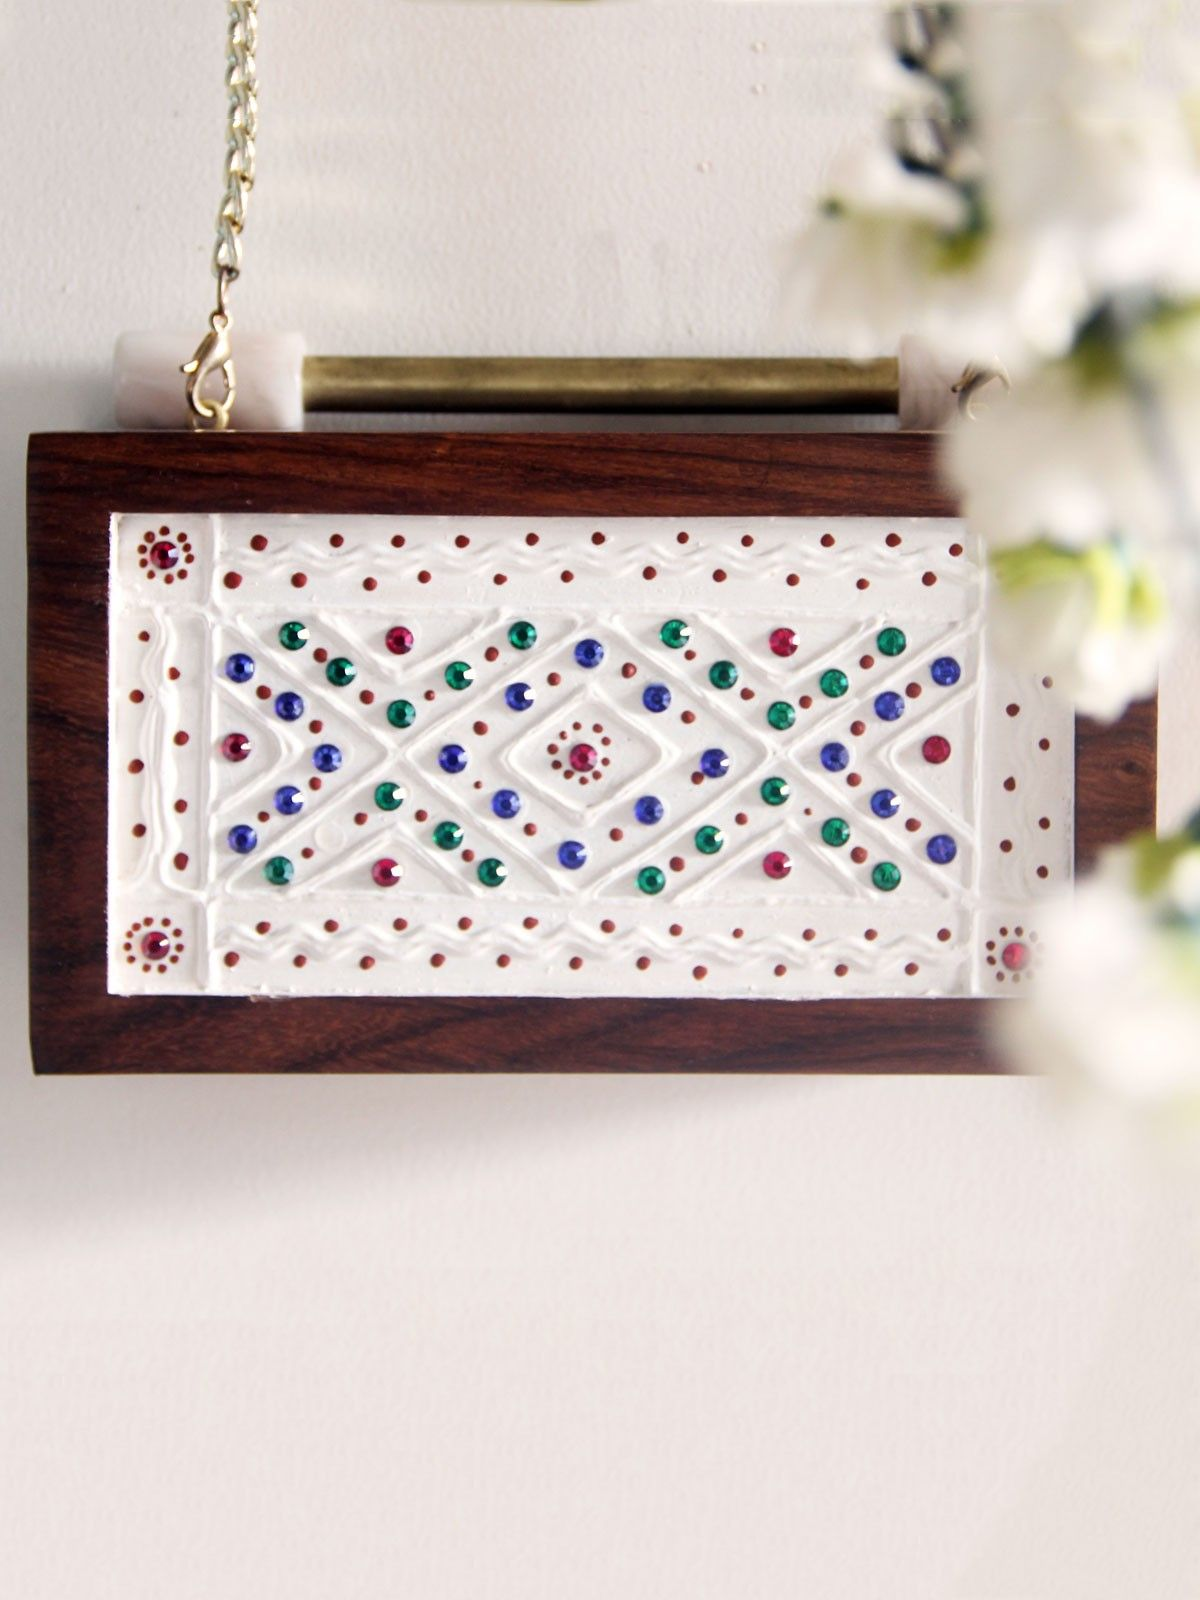 Leppan white wodden frame with multicolored stones womens  Clutch